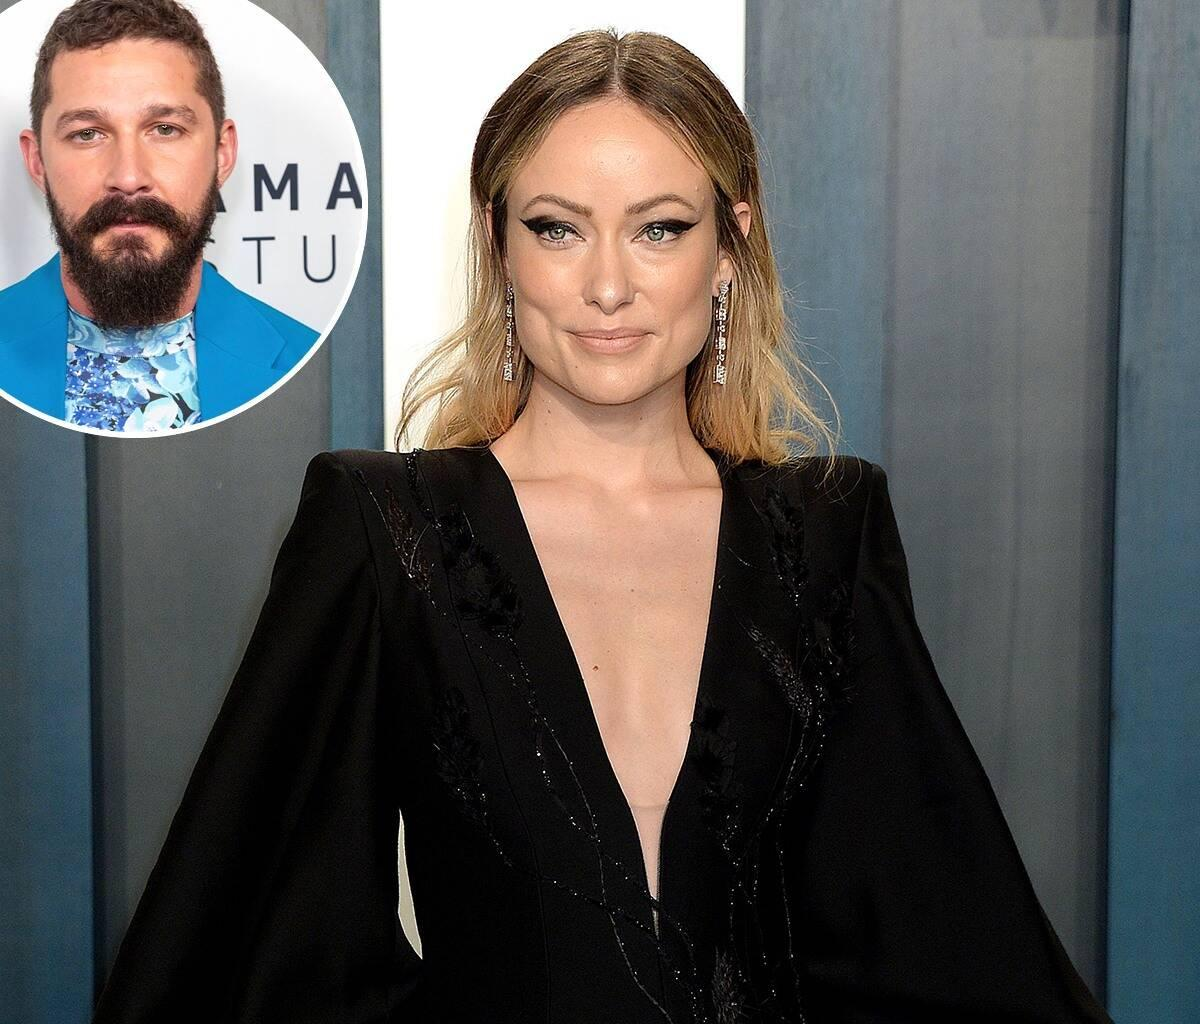 Olivia Wilde Reportedly Fired Shia LaBeouf From Her Upcoming Film 'Don't Worry Darling' - Here's Why!